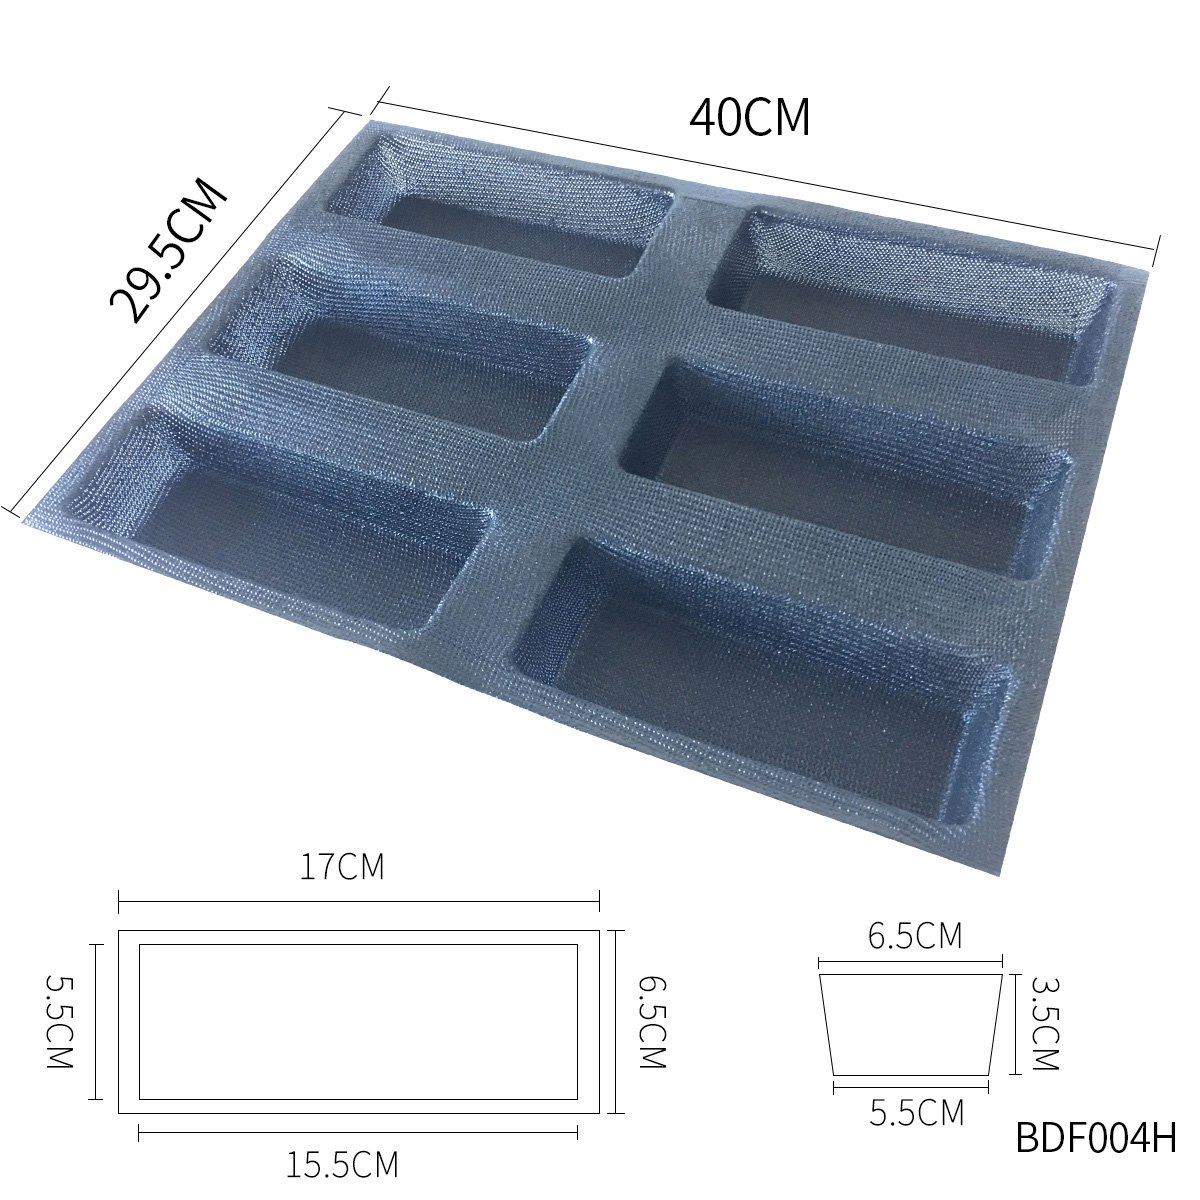 Bluedrop Silicone Bread Forms Square Shape Bread Molds Non Stick Bakery Trays Silicone Coated Fiber Glass 6 Caves Rectangle Moulds by Bluedrop (Image #3)